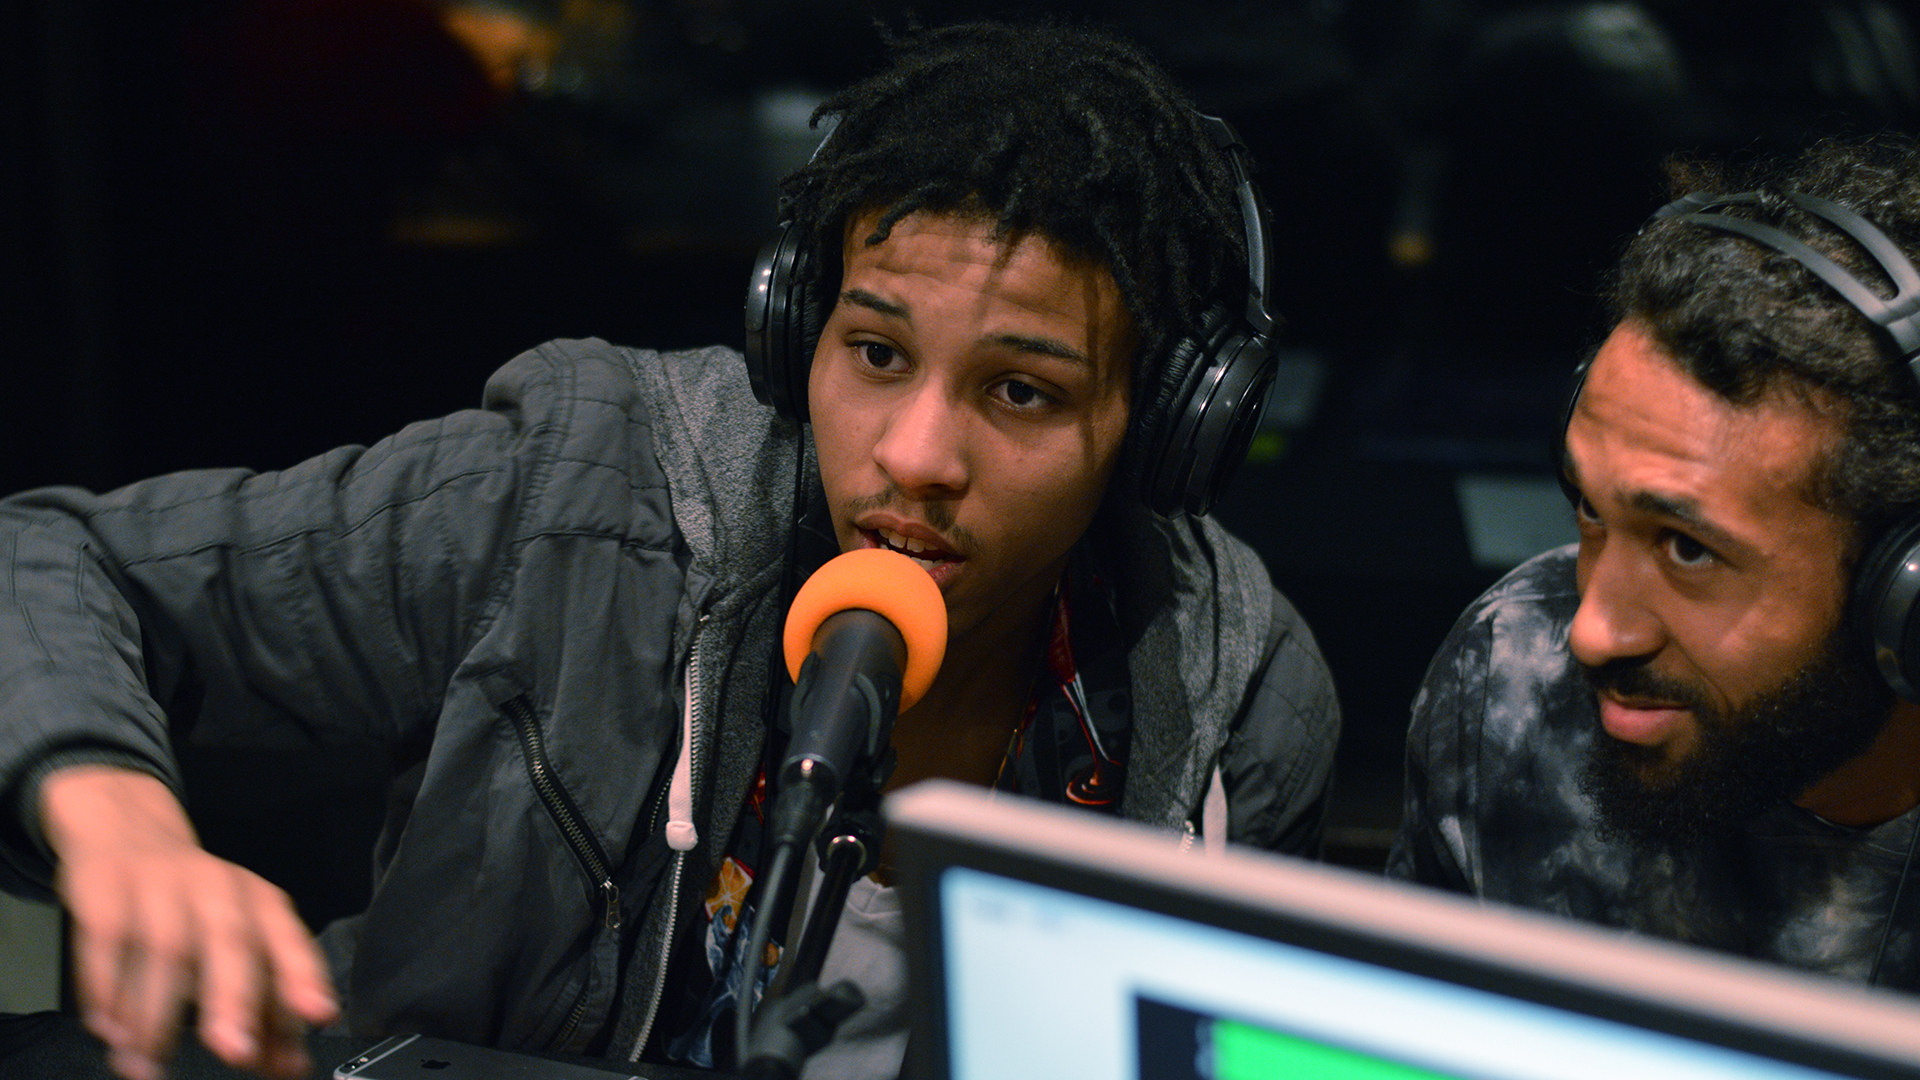 youth on microphone